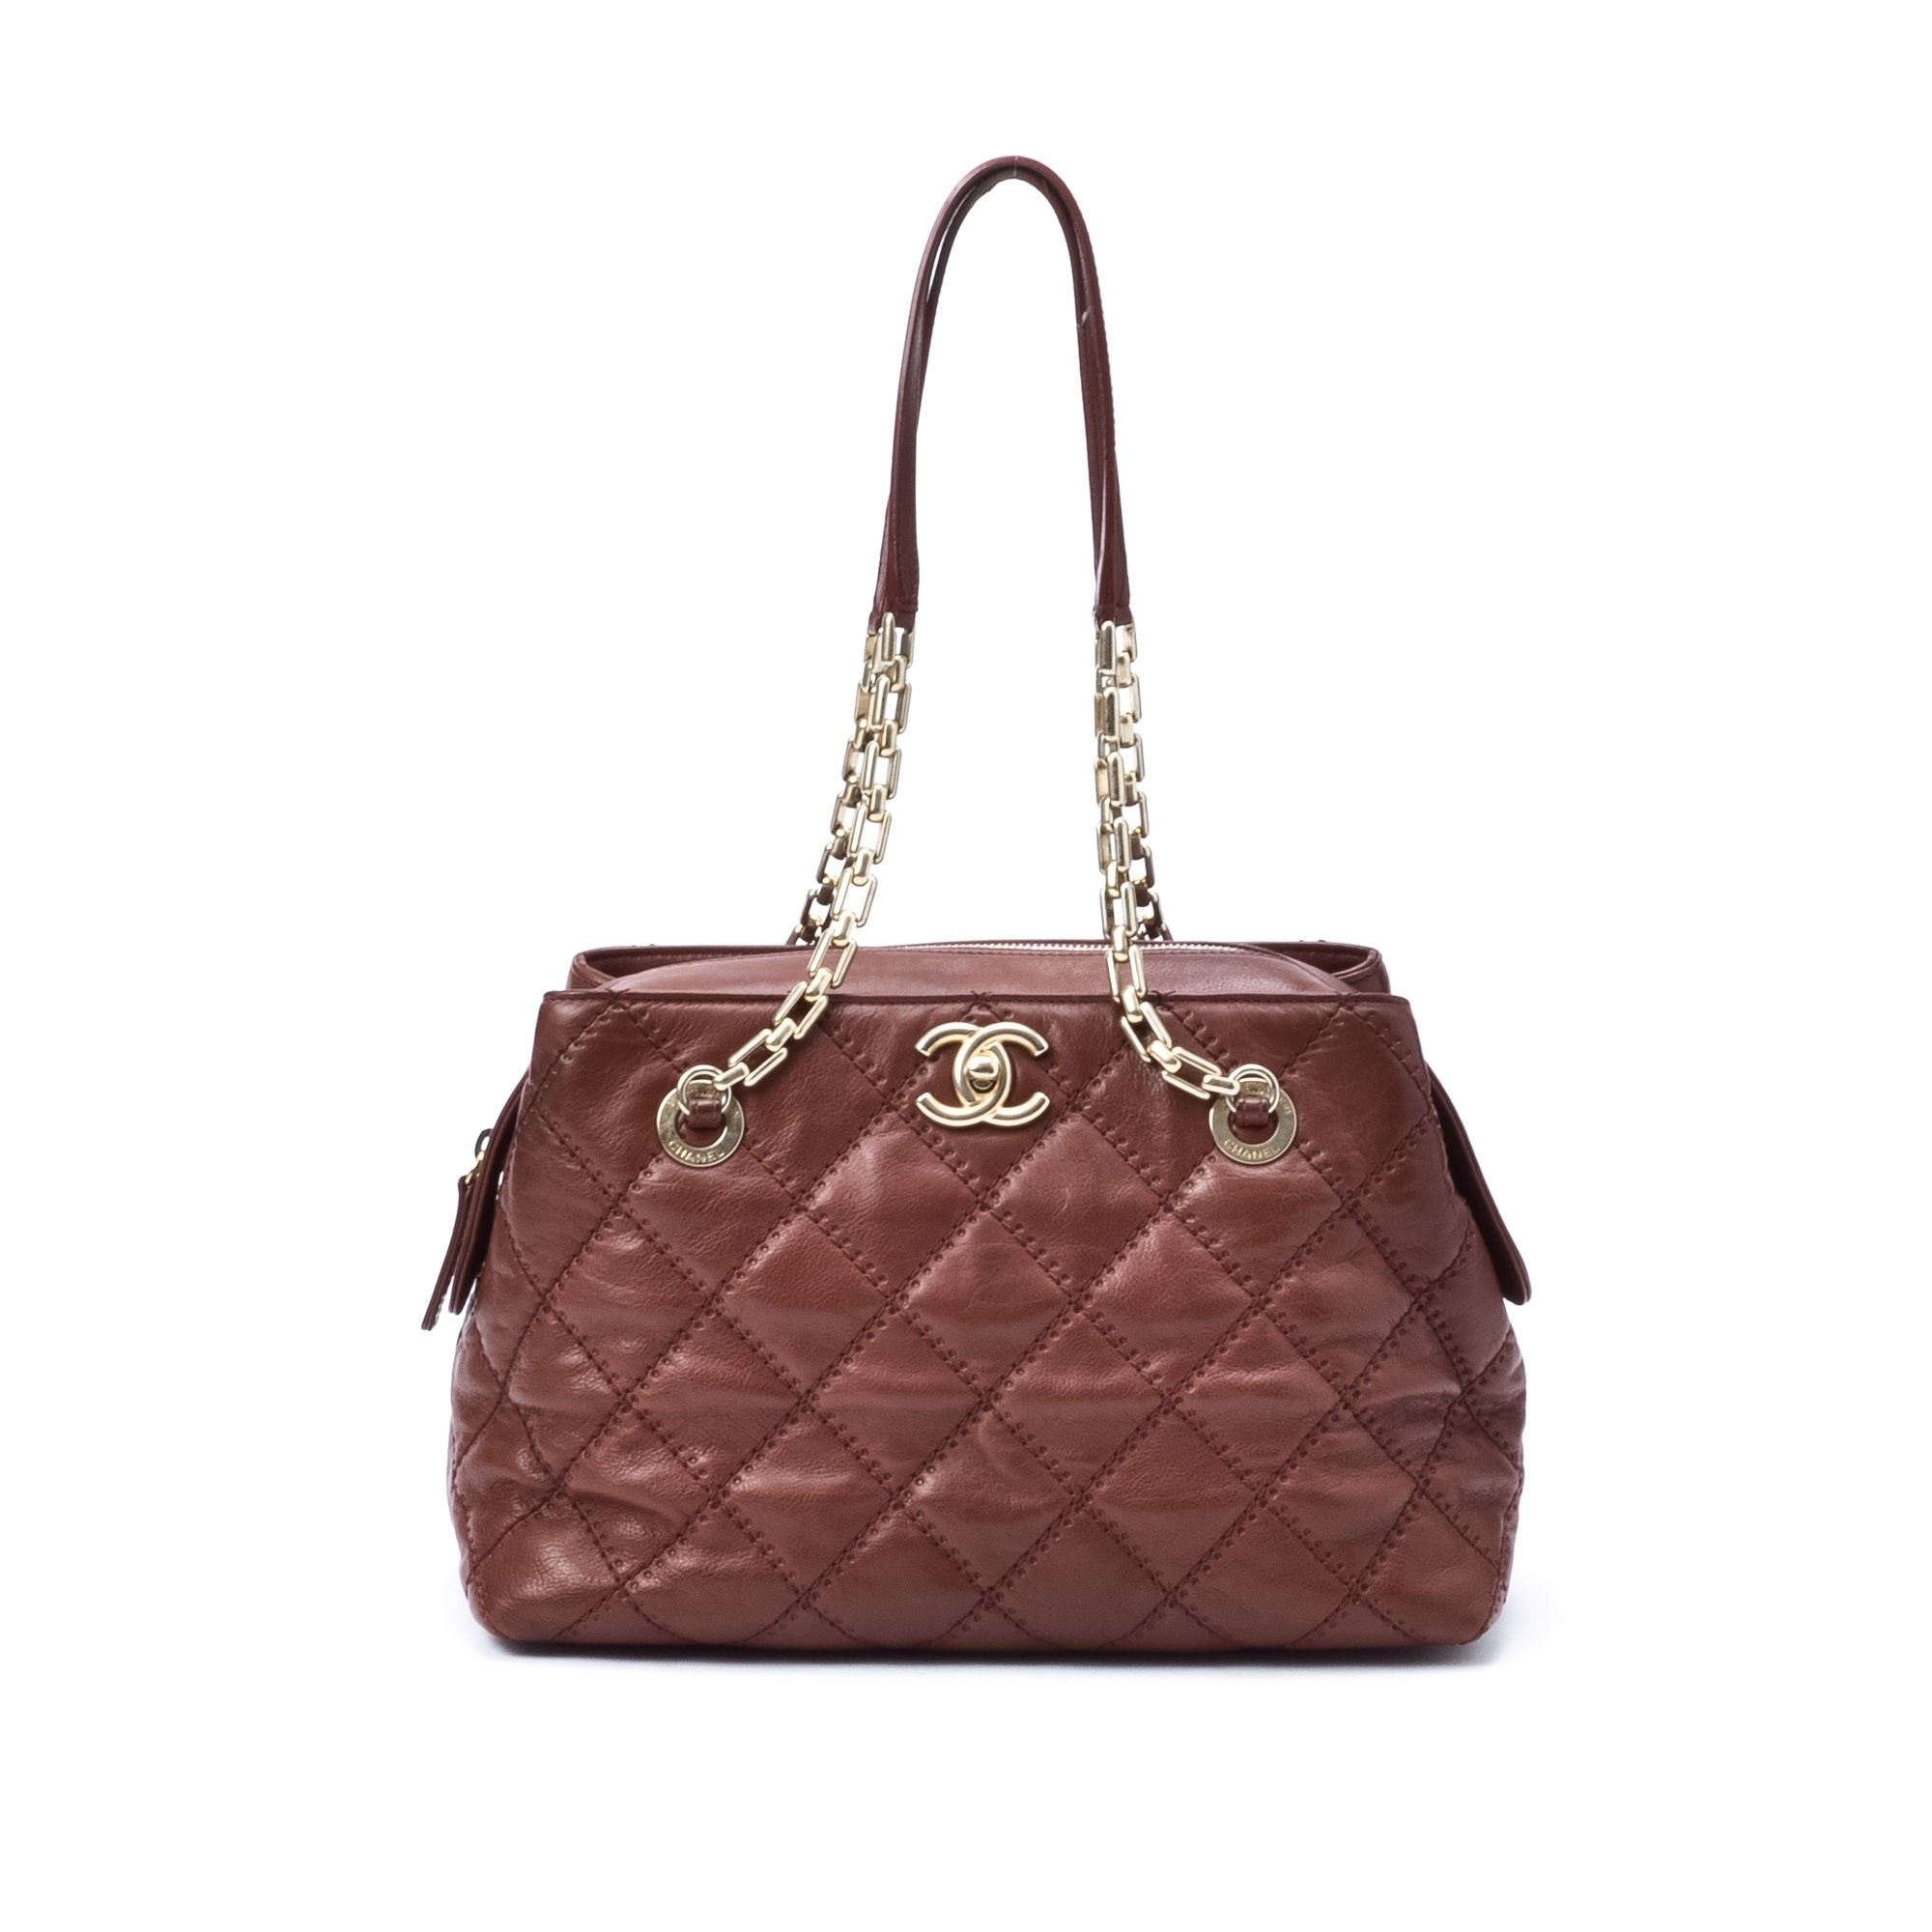 Buy Brown Leather Chanel Tote At Lxr Amp Co